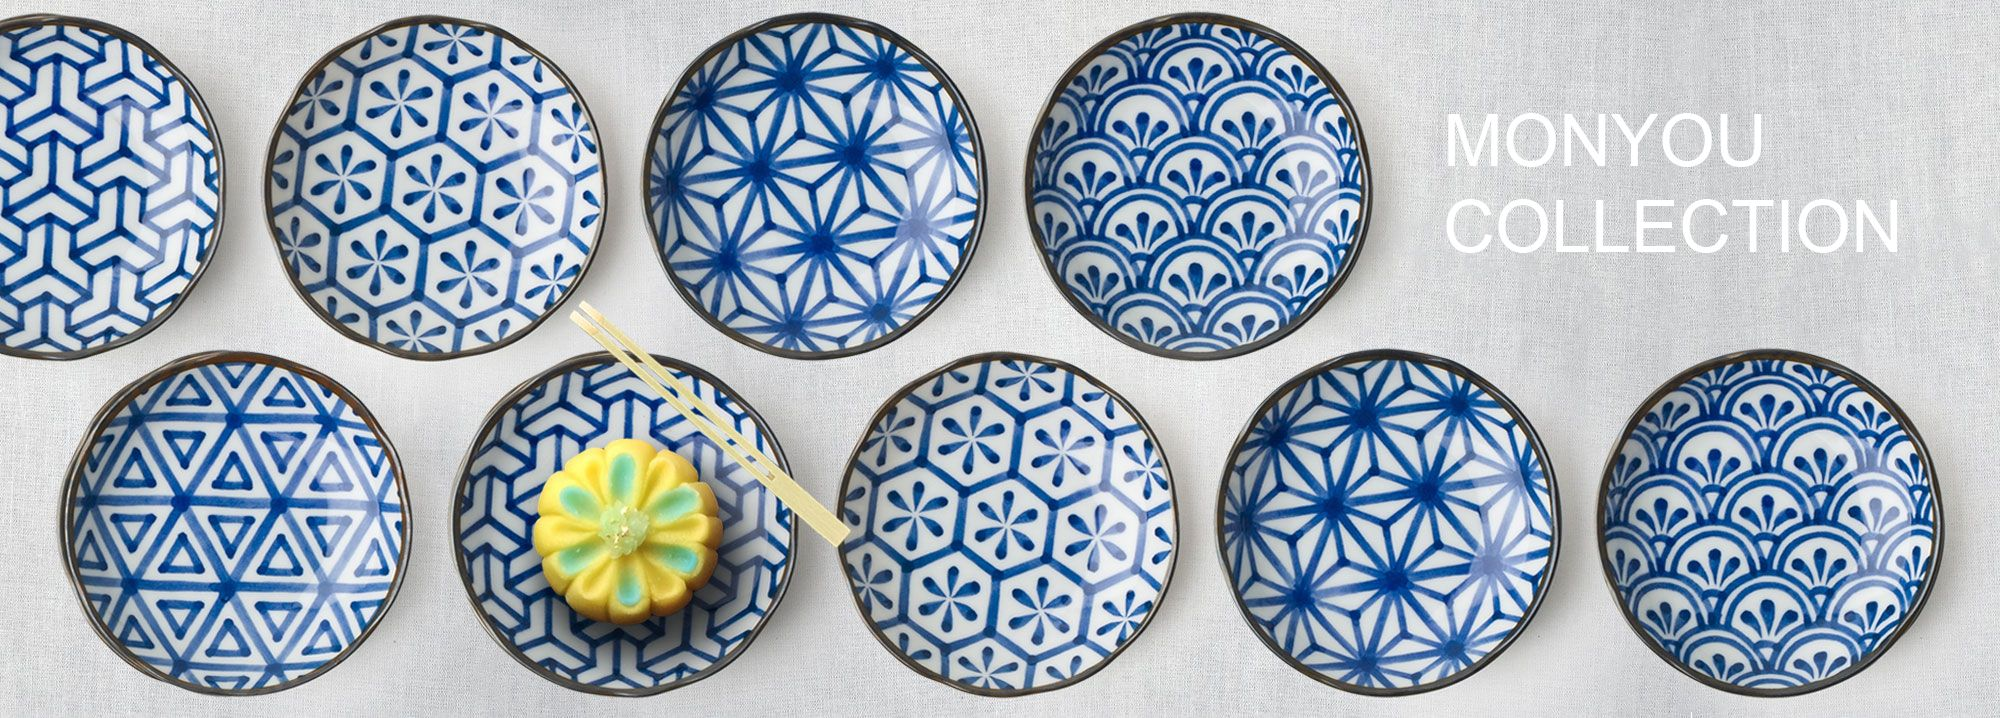 Miya Company Japanese Tableware And Gifts Japanese Plates Pottery Patterns Patterned Dishes